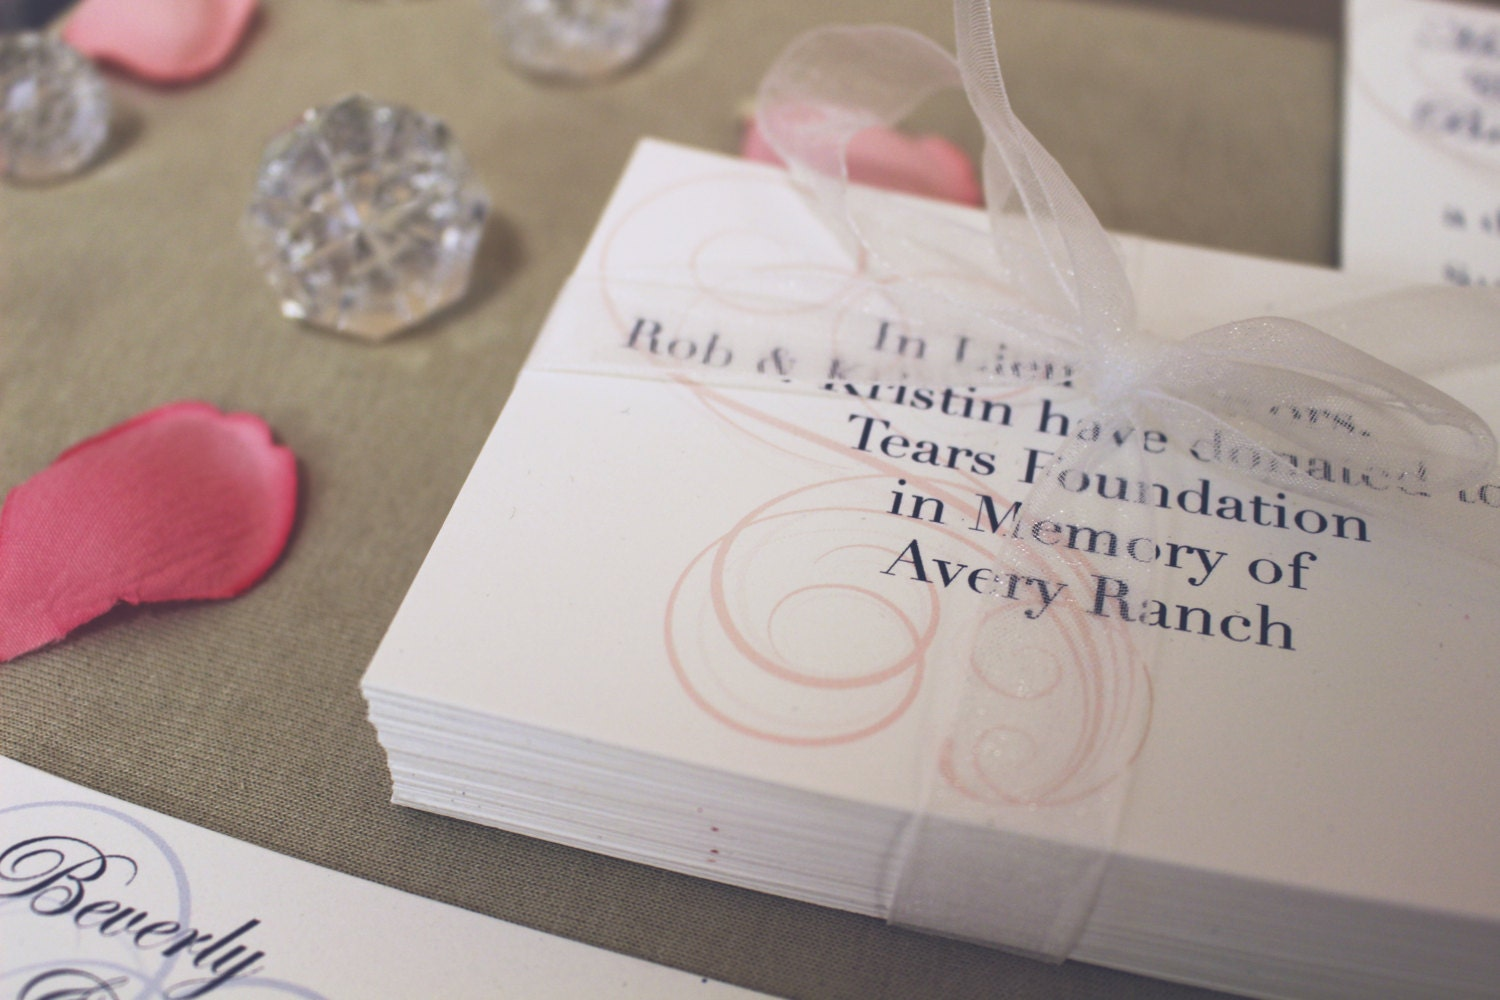 Donation cards in lieu of favors charity 4 bar cards